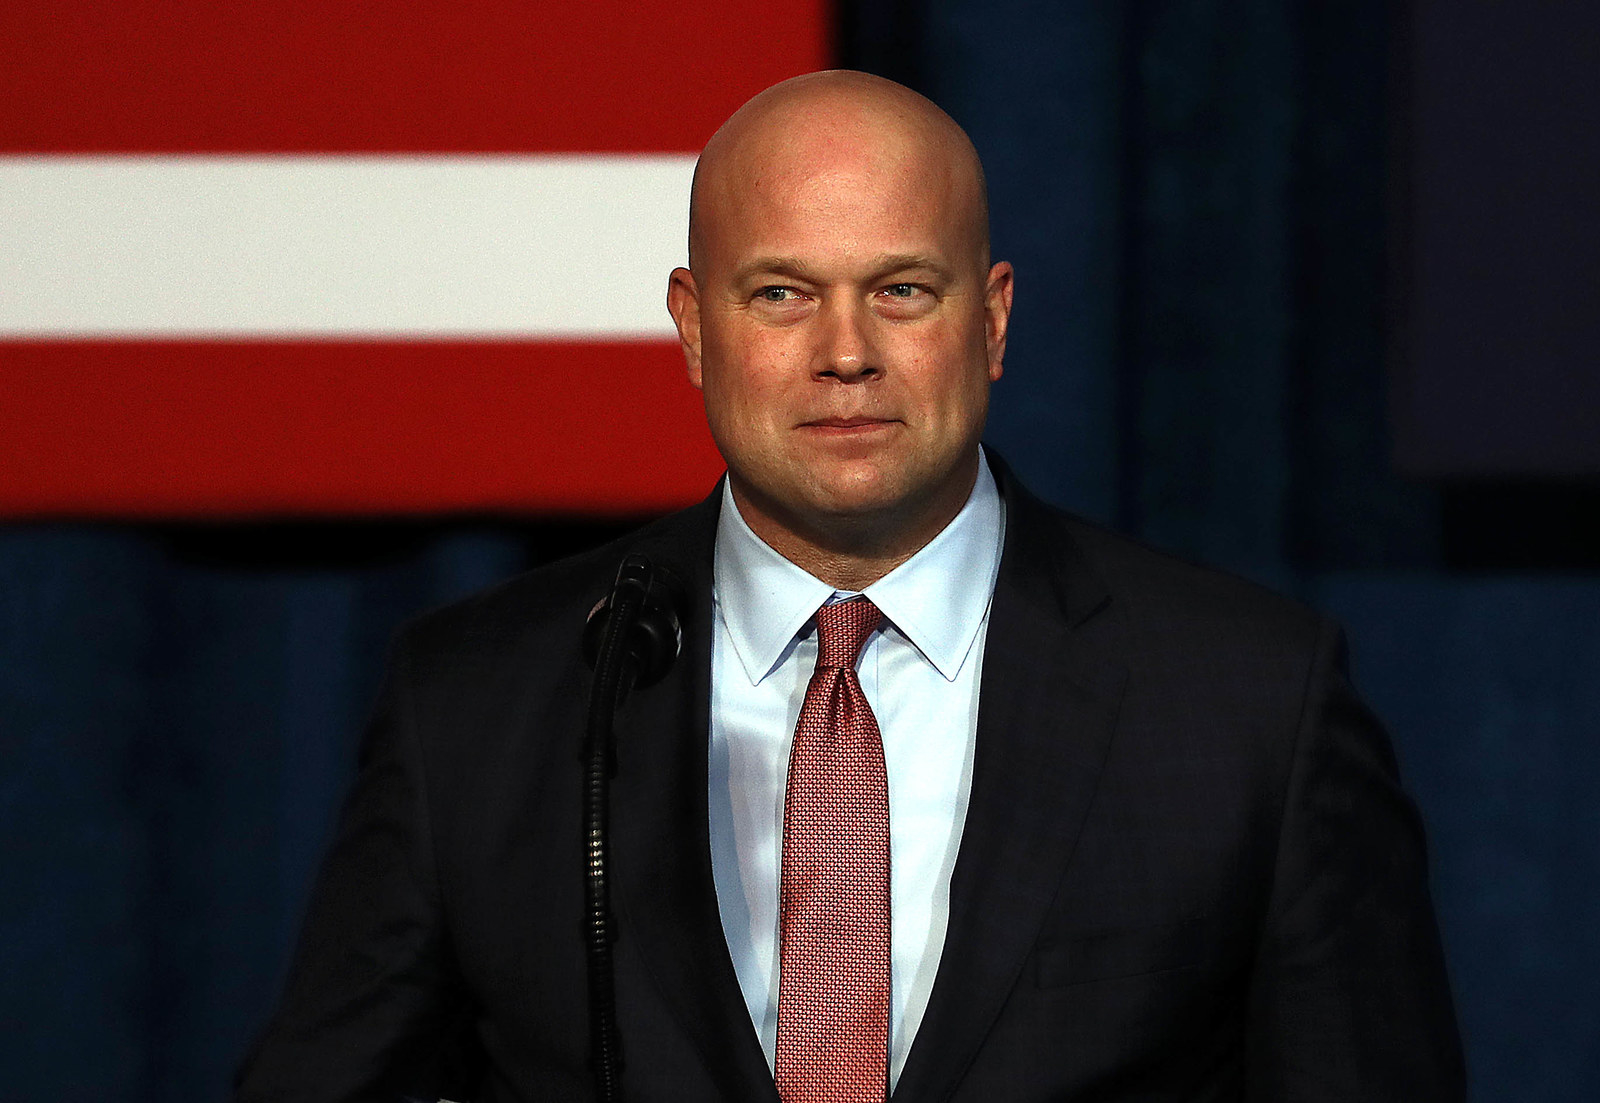 Congress Wants To Know Whether Matthew Whitaker Talked To The White House About The Special Counsel's Response to A BuzzFeed News Report